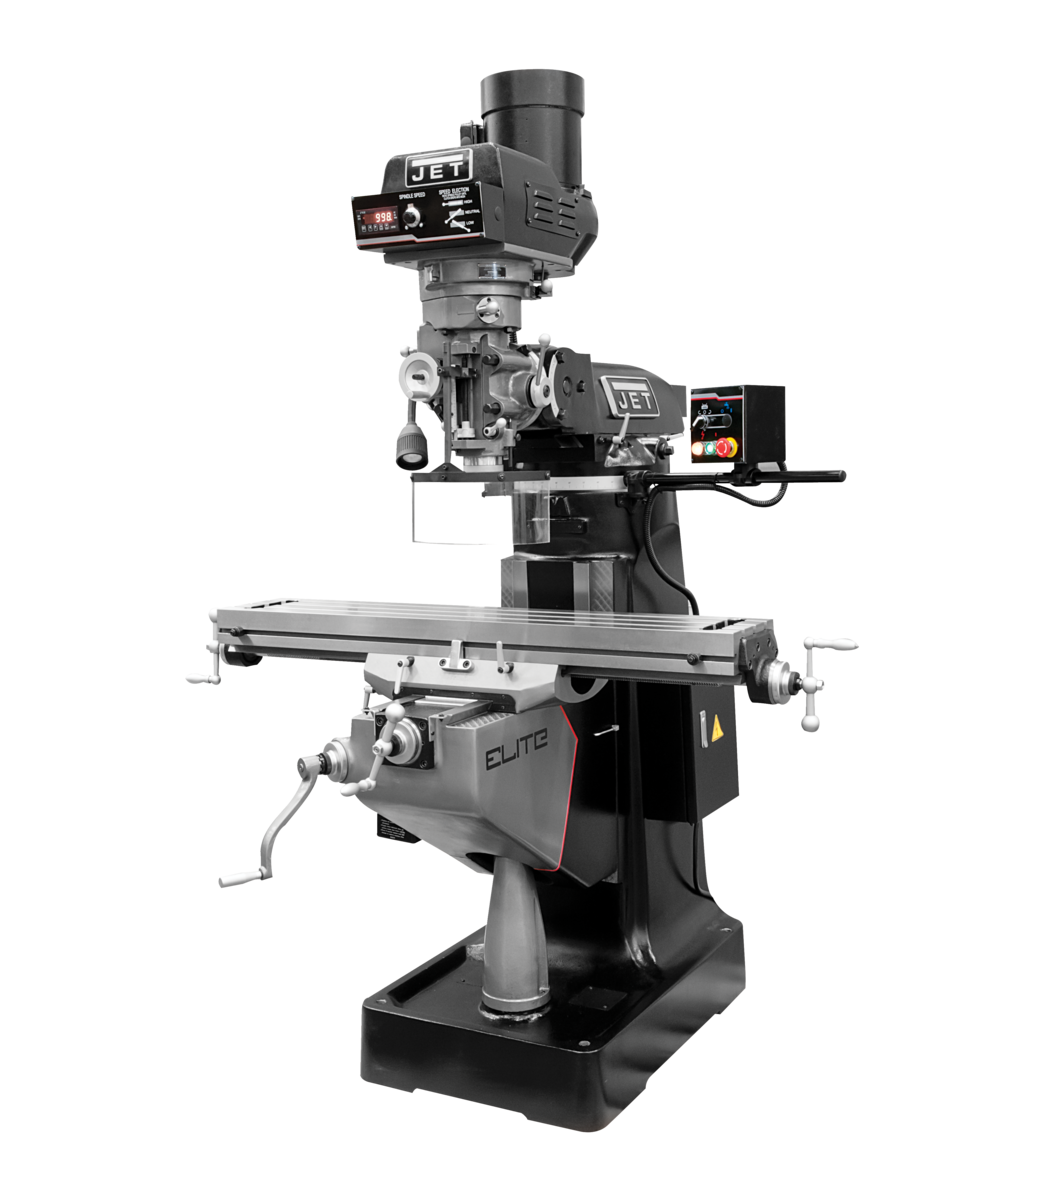 EVS-949 Mill with 2-Axis Newall DP700 DRO and Servo X, Y, Z-Axis Powerfeeds